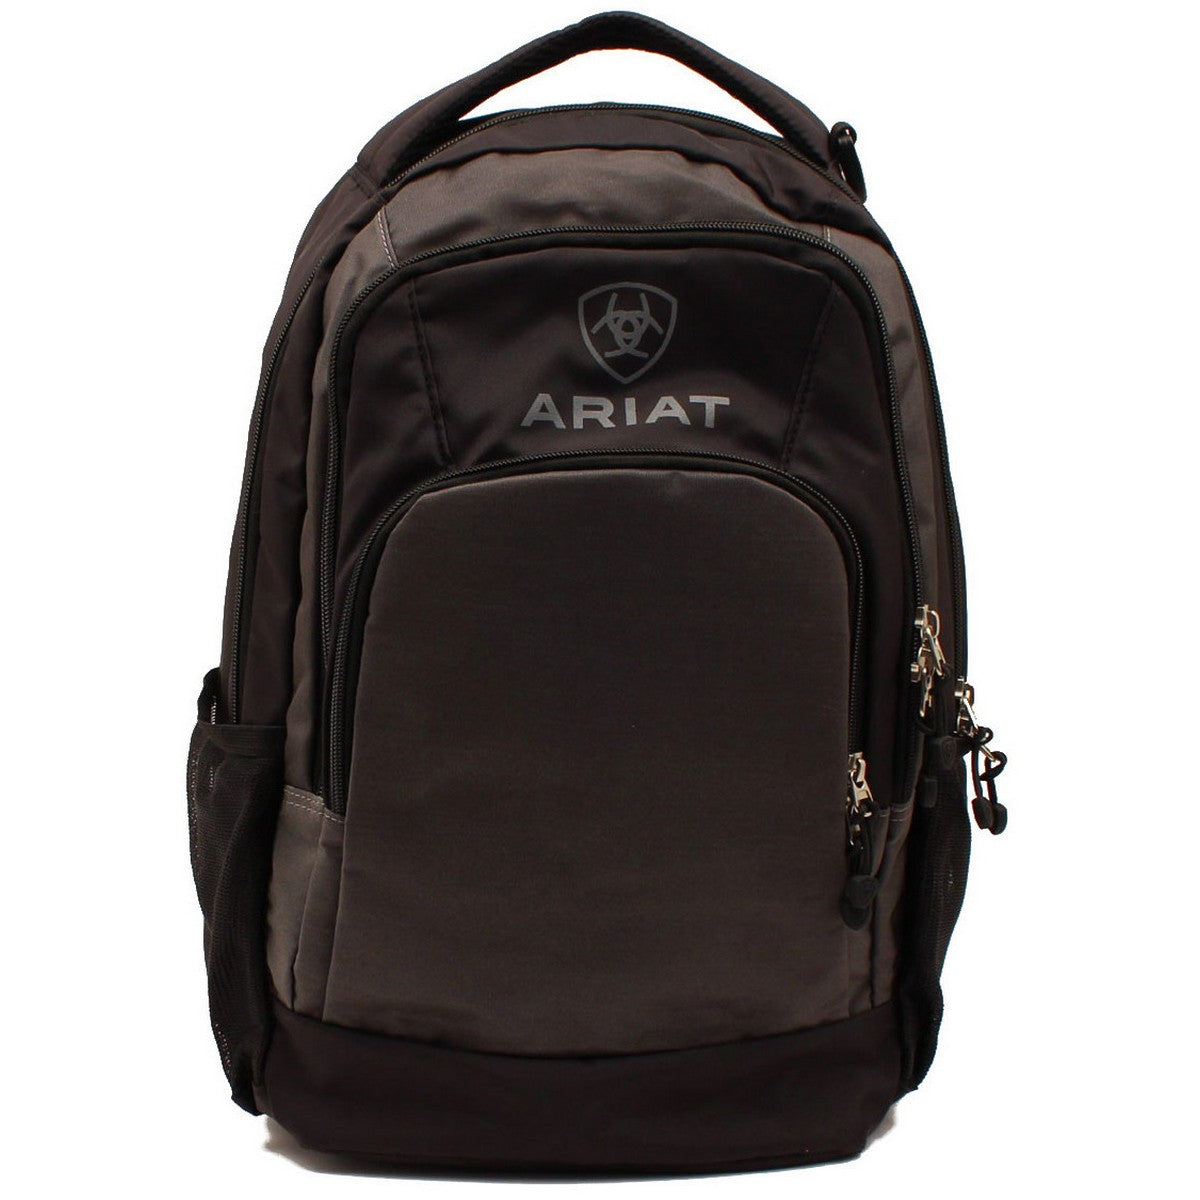 Ariat Grey and Black Top Handle Backpack